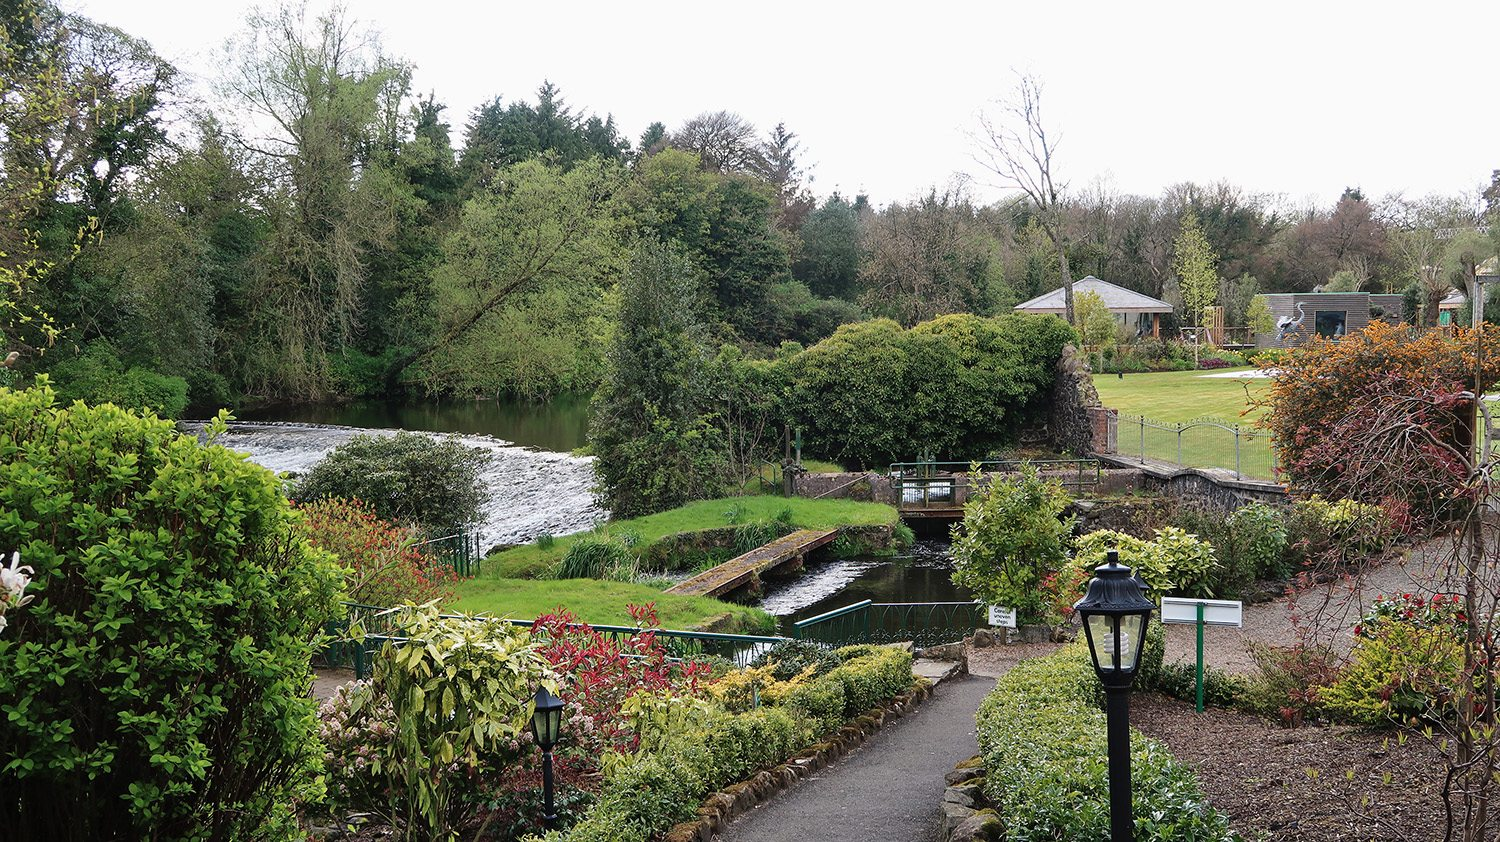 Landscaped gardens of spa with river running to the left